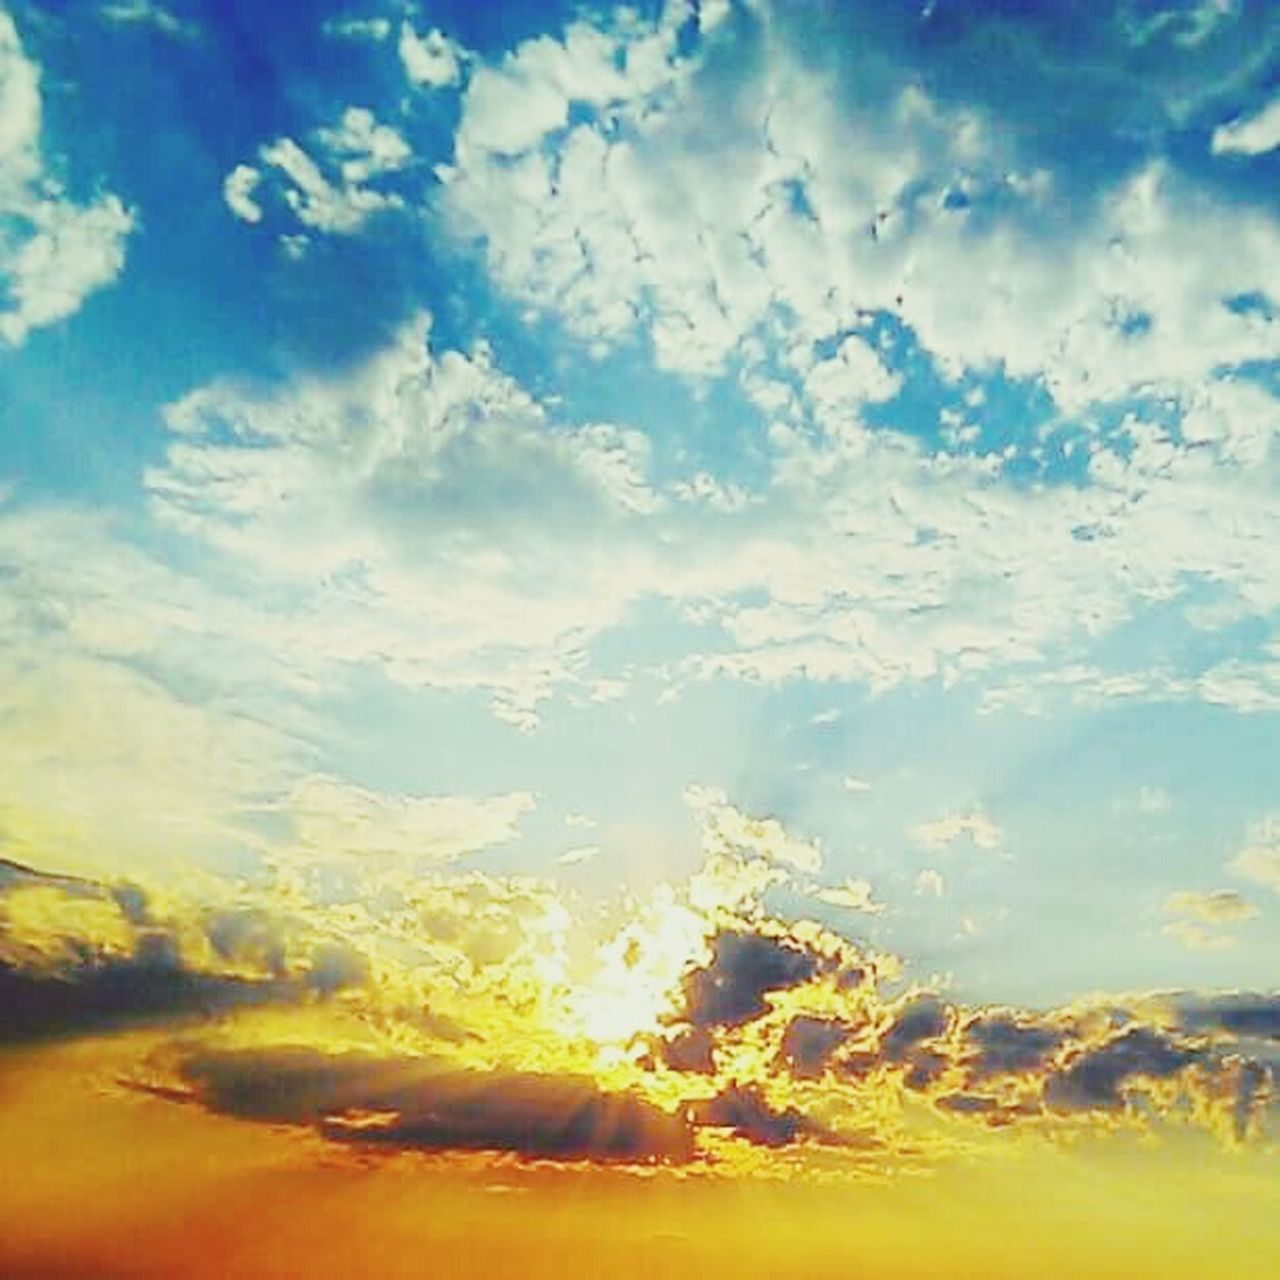 sky, nature, cloud - sky, beauty in nature, scenics, tranquil scene, no people, tranquility, sunset, sunlight, outdoors, yellow, day, backgrounds, blue